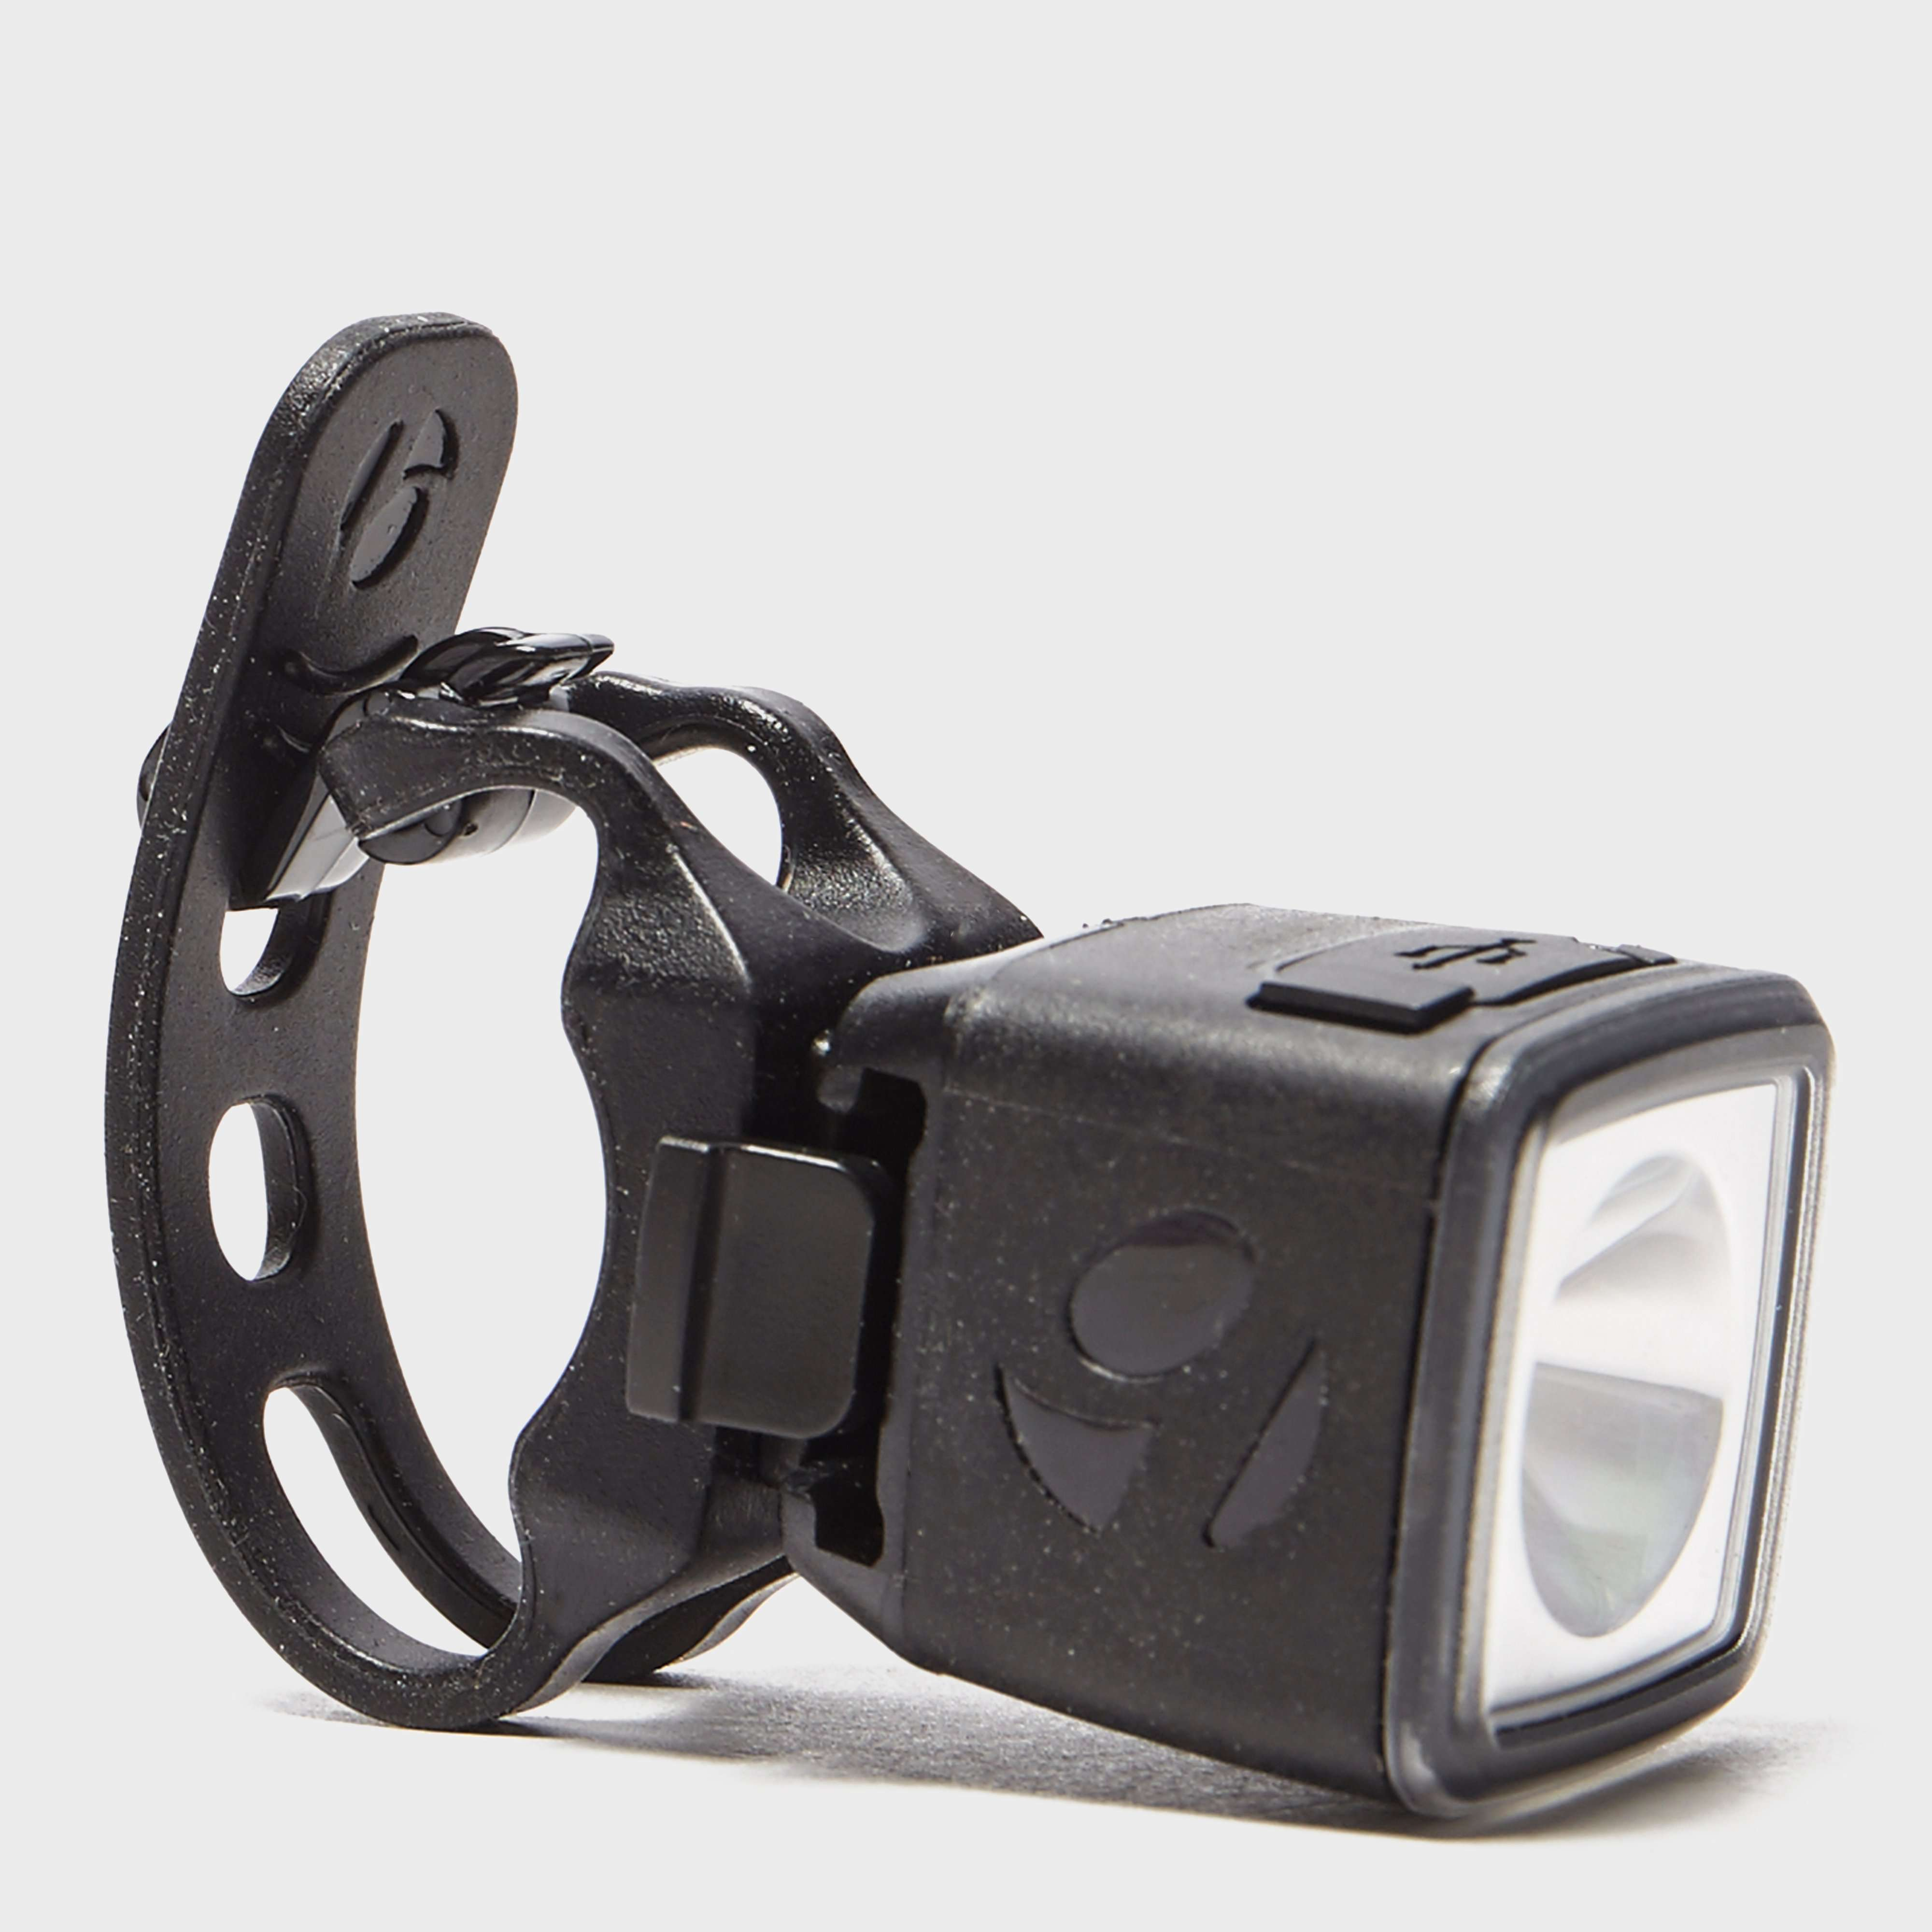 BONTRAGER Ion 100 R Cycle Light